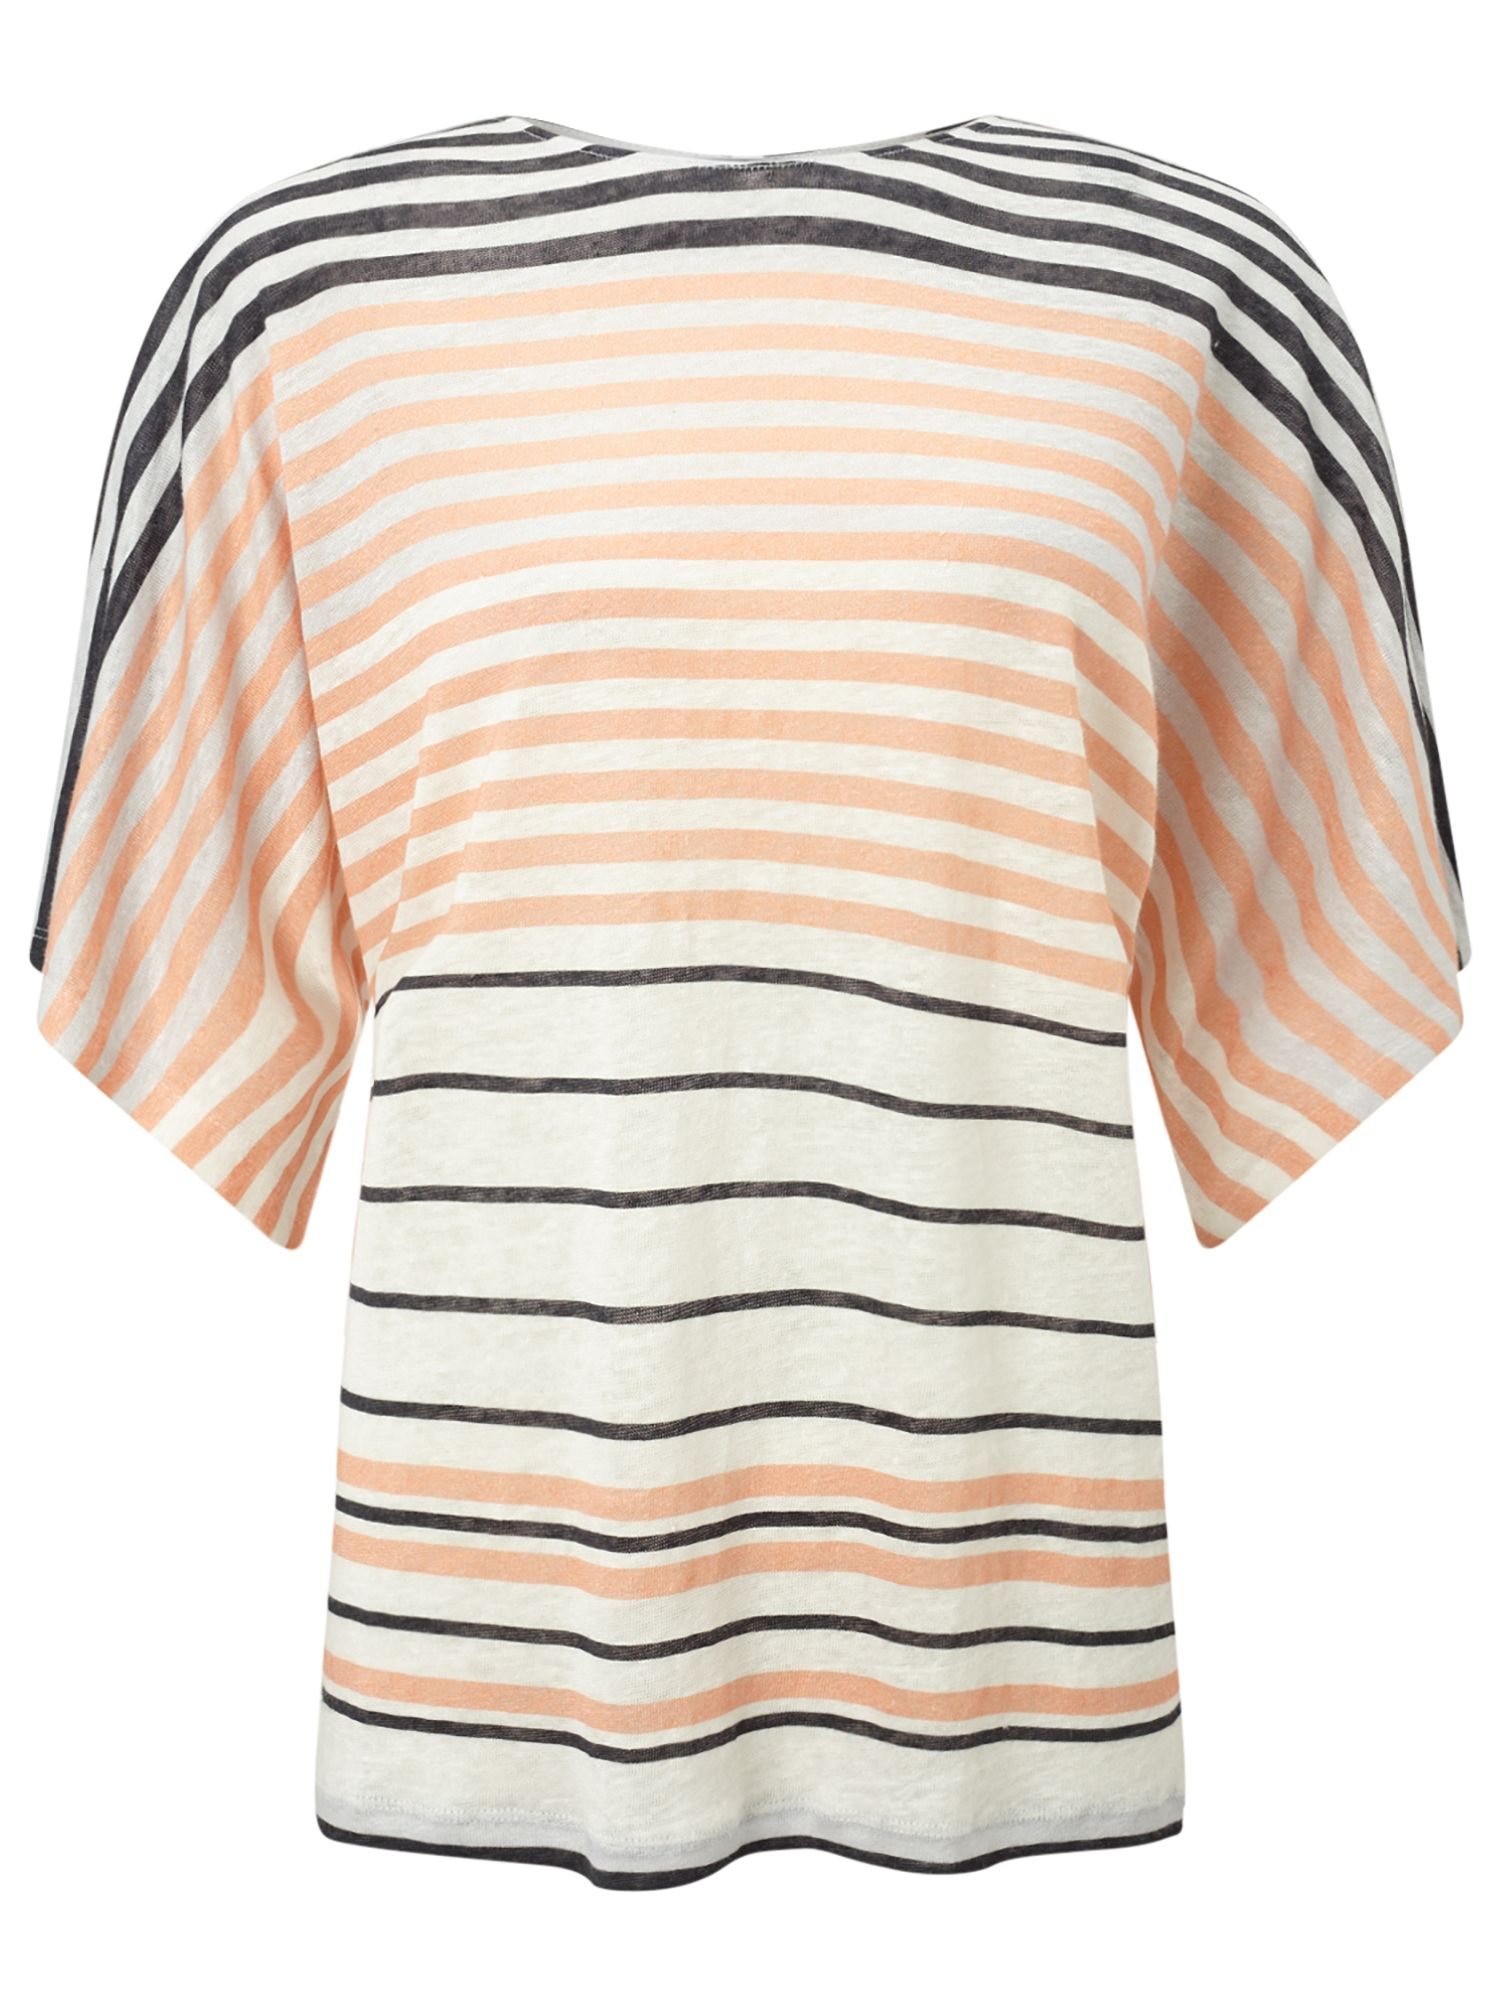 Jigsaw Linen Multi Stripe T-shirt, Orange